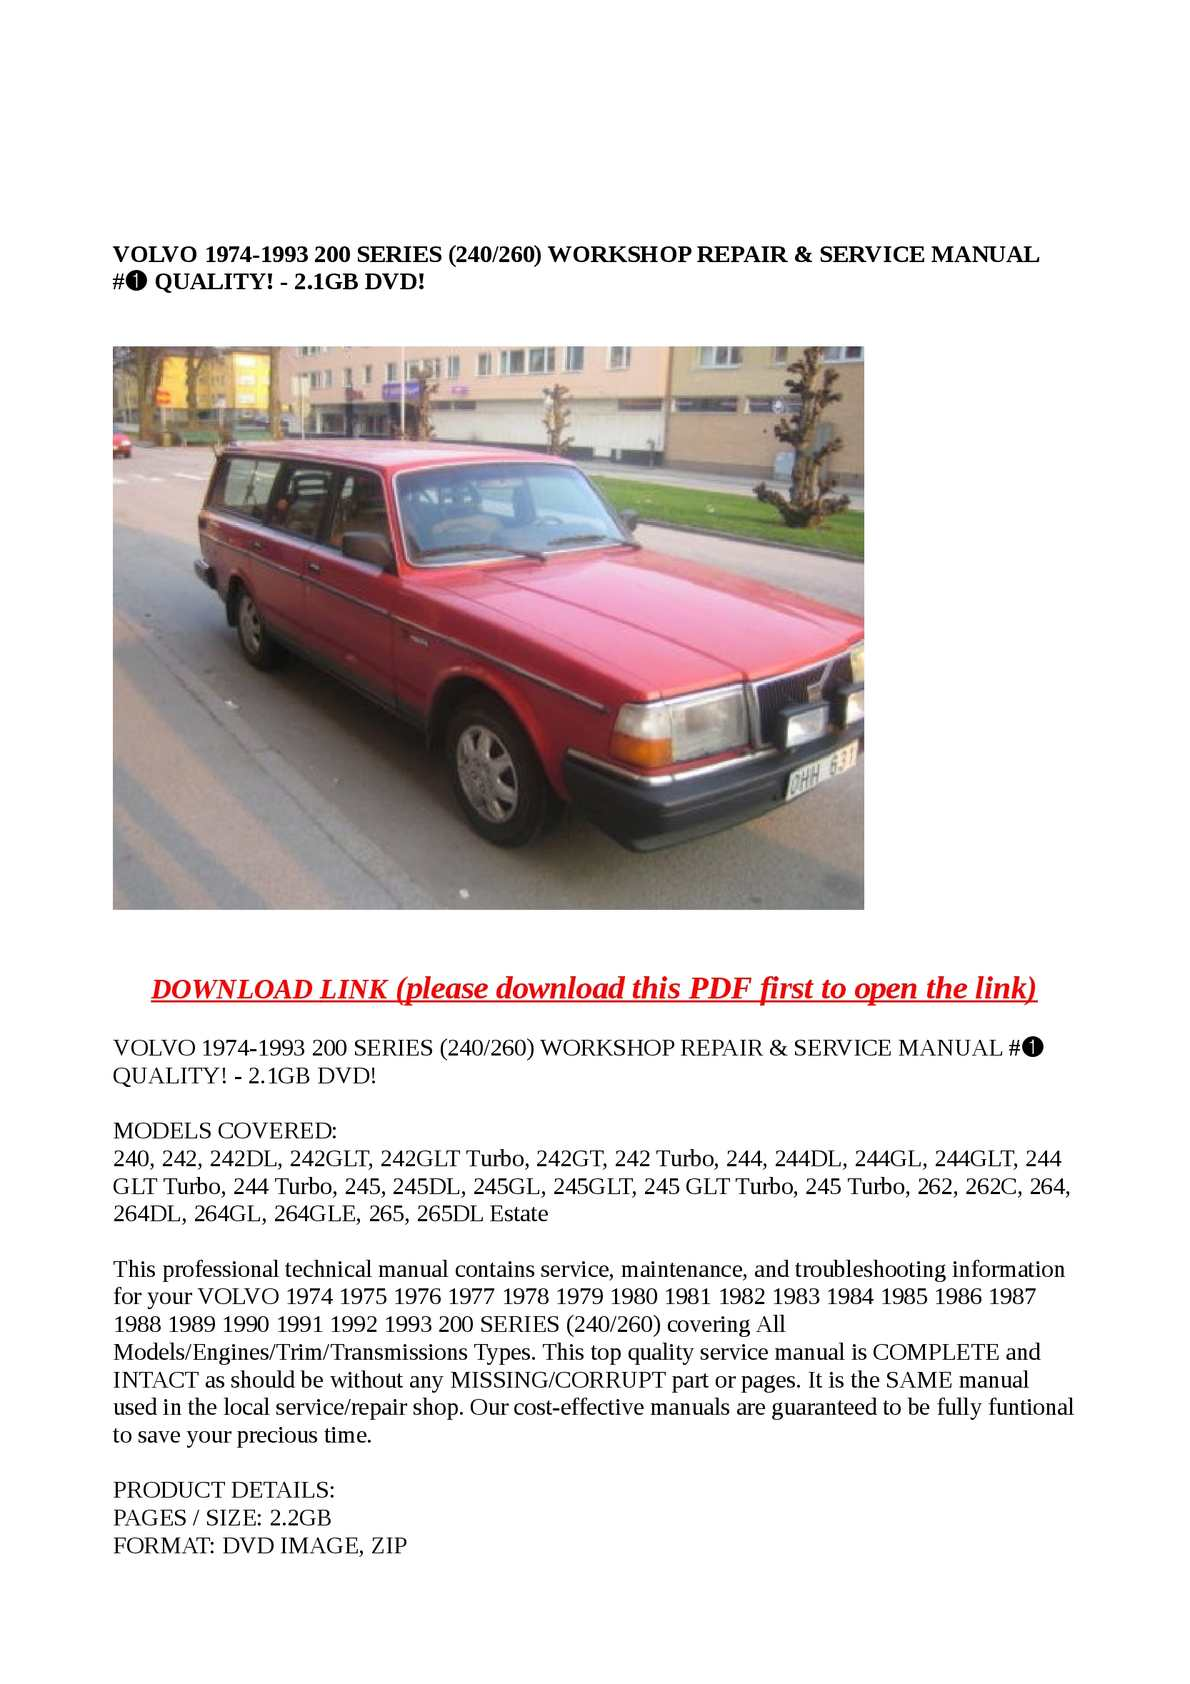 Calaméo - VOLVO 1974-1993 200 SERIES (240/260) WORKSHOP REPAIR & SERVICE  MANUAL #➀ QUALITY! - 2.1GB DVD!